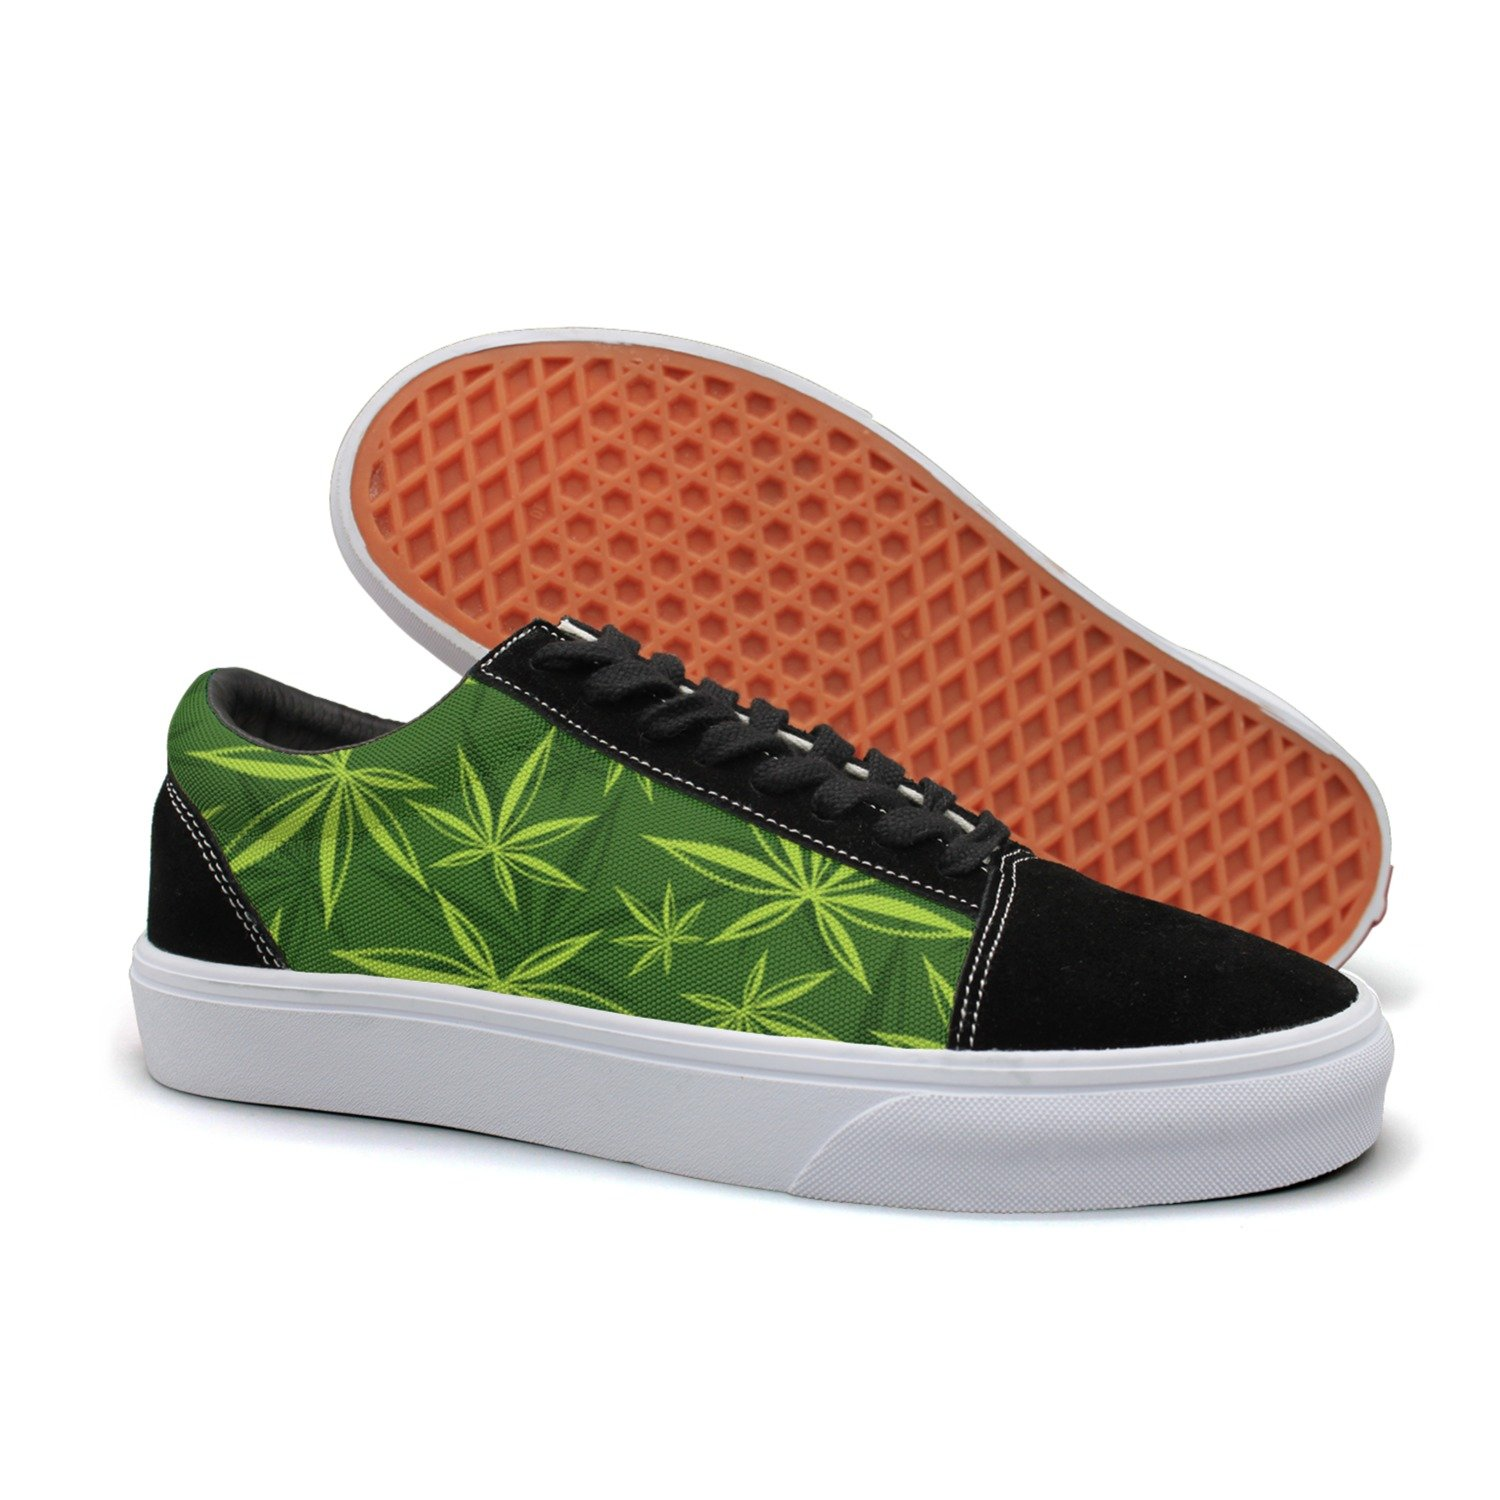 separation shoes a3ad3 a454a Amazon.com  Armsttm Women Skate Shoes Cannabis Leaf Marijuana Weed Classic  Suede Sneaker Lace Up Shoes  Sports   Outdoors